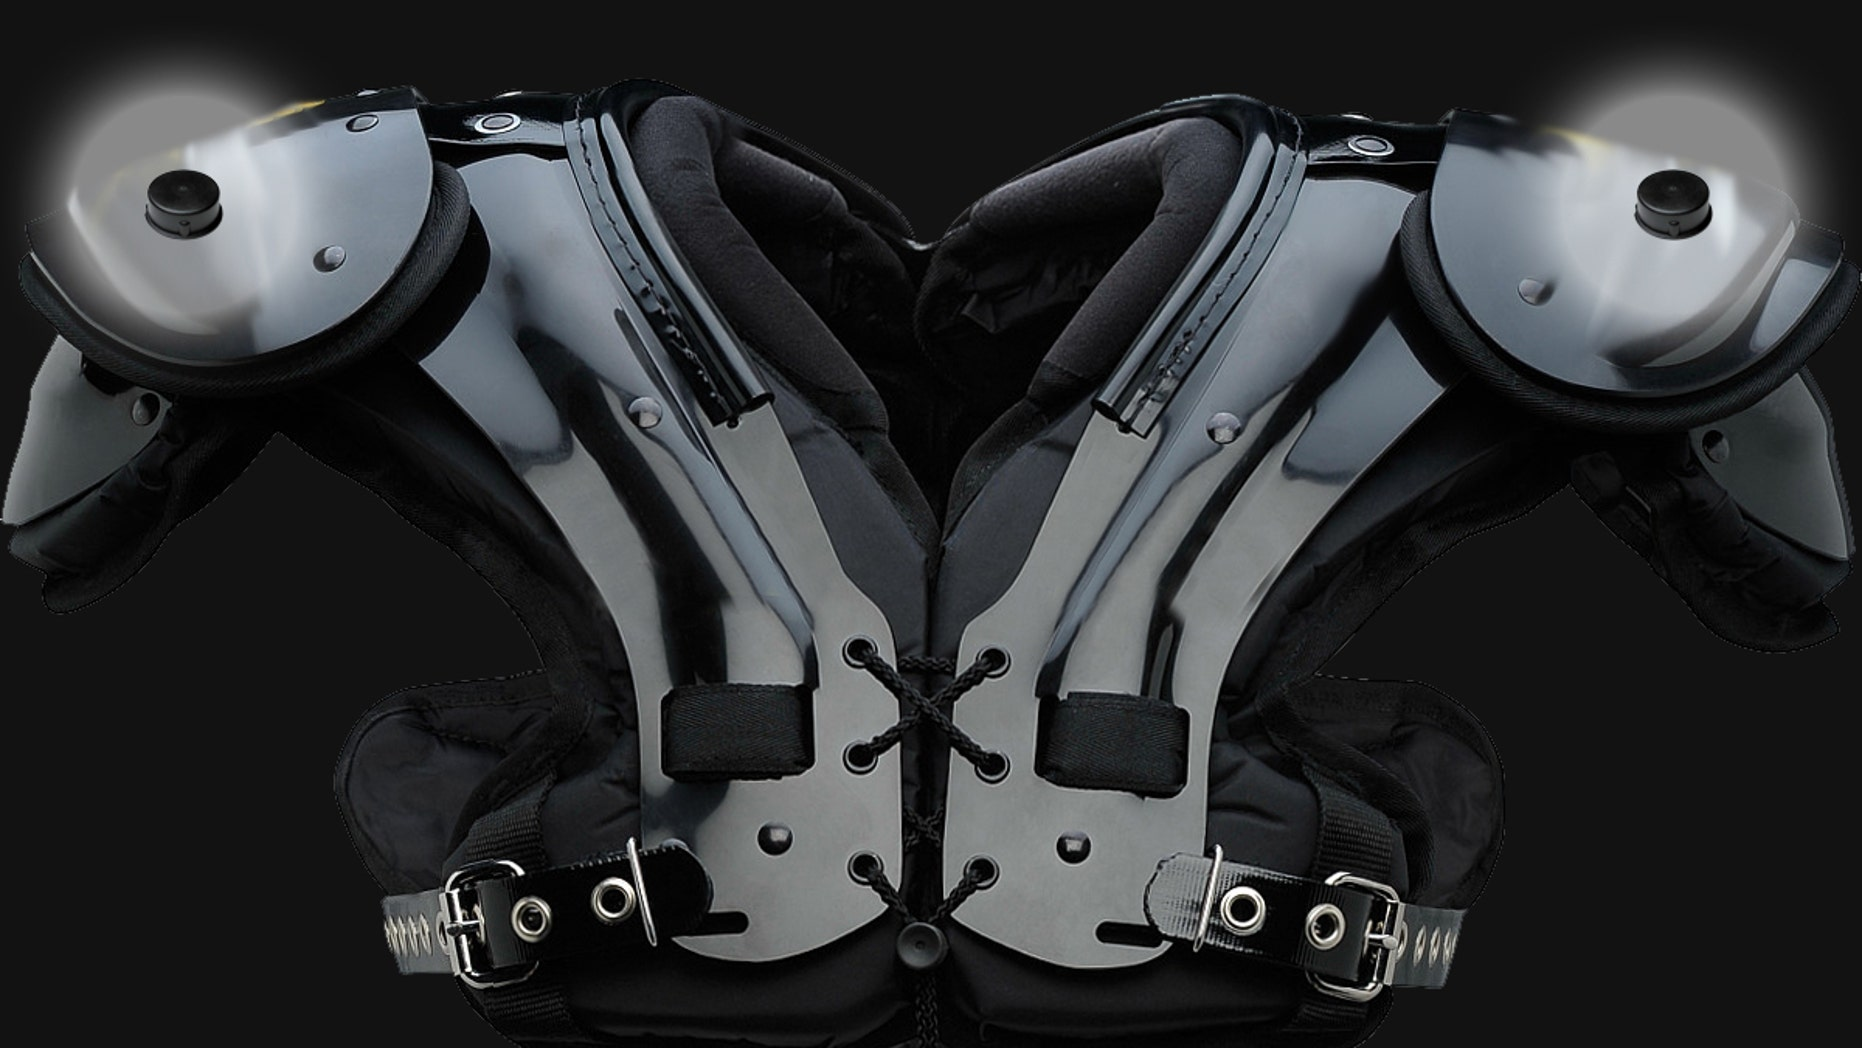 Shoulder pads with the RFID chips highlighted (Zebra Technologies).